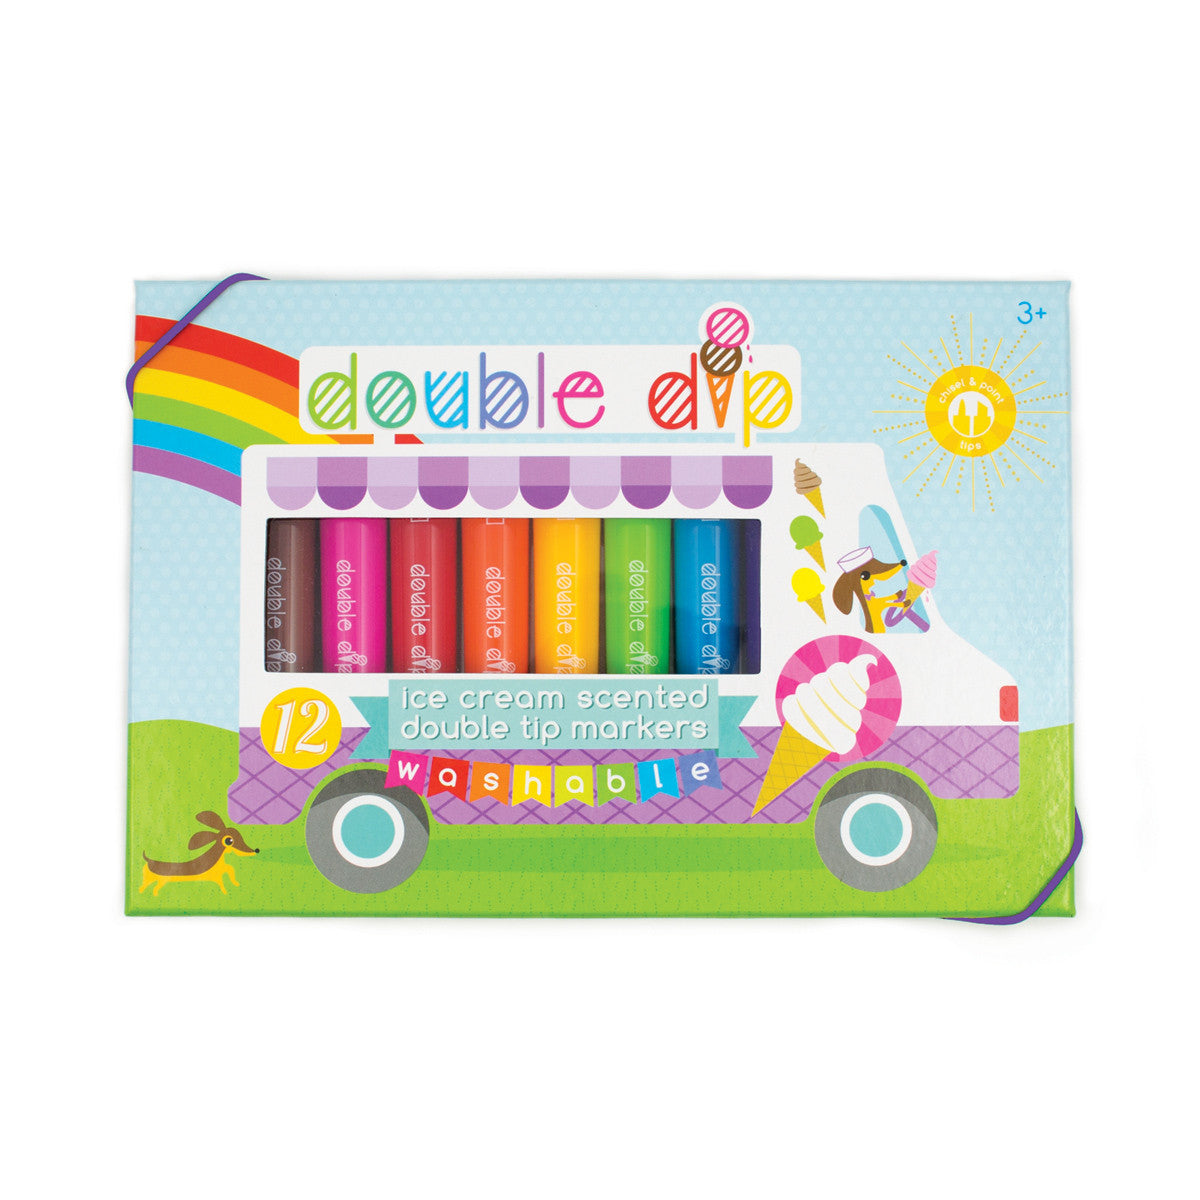 Double Dip Ice Cream Scented Marker Set